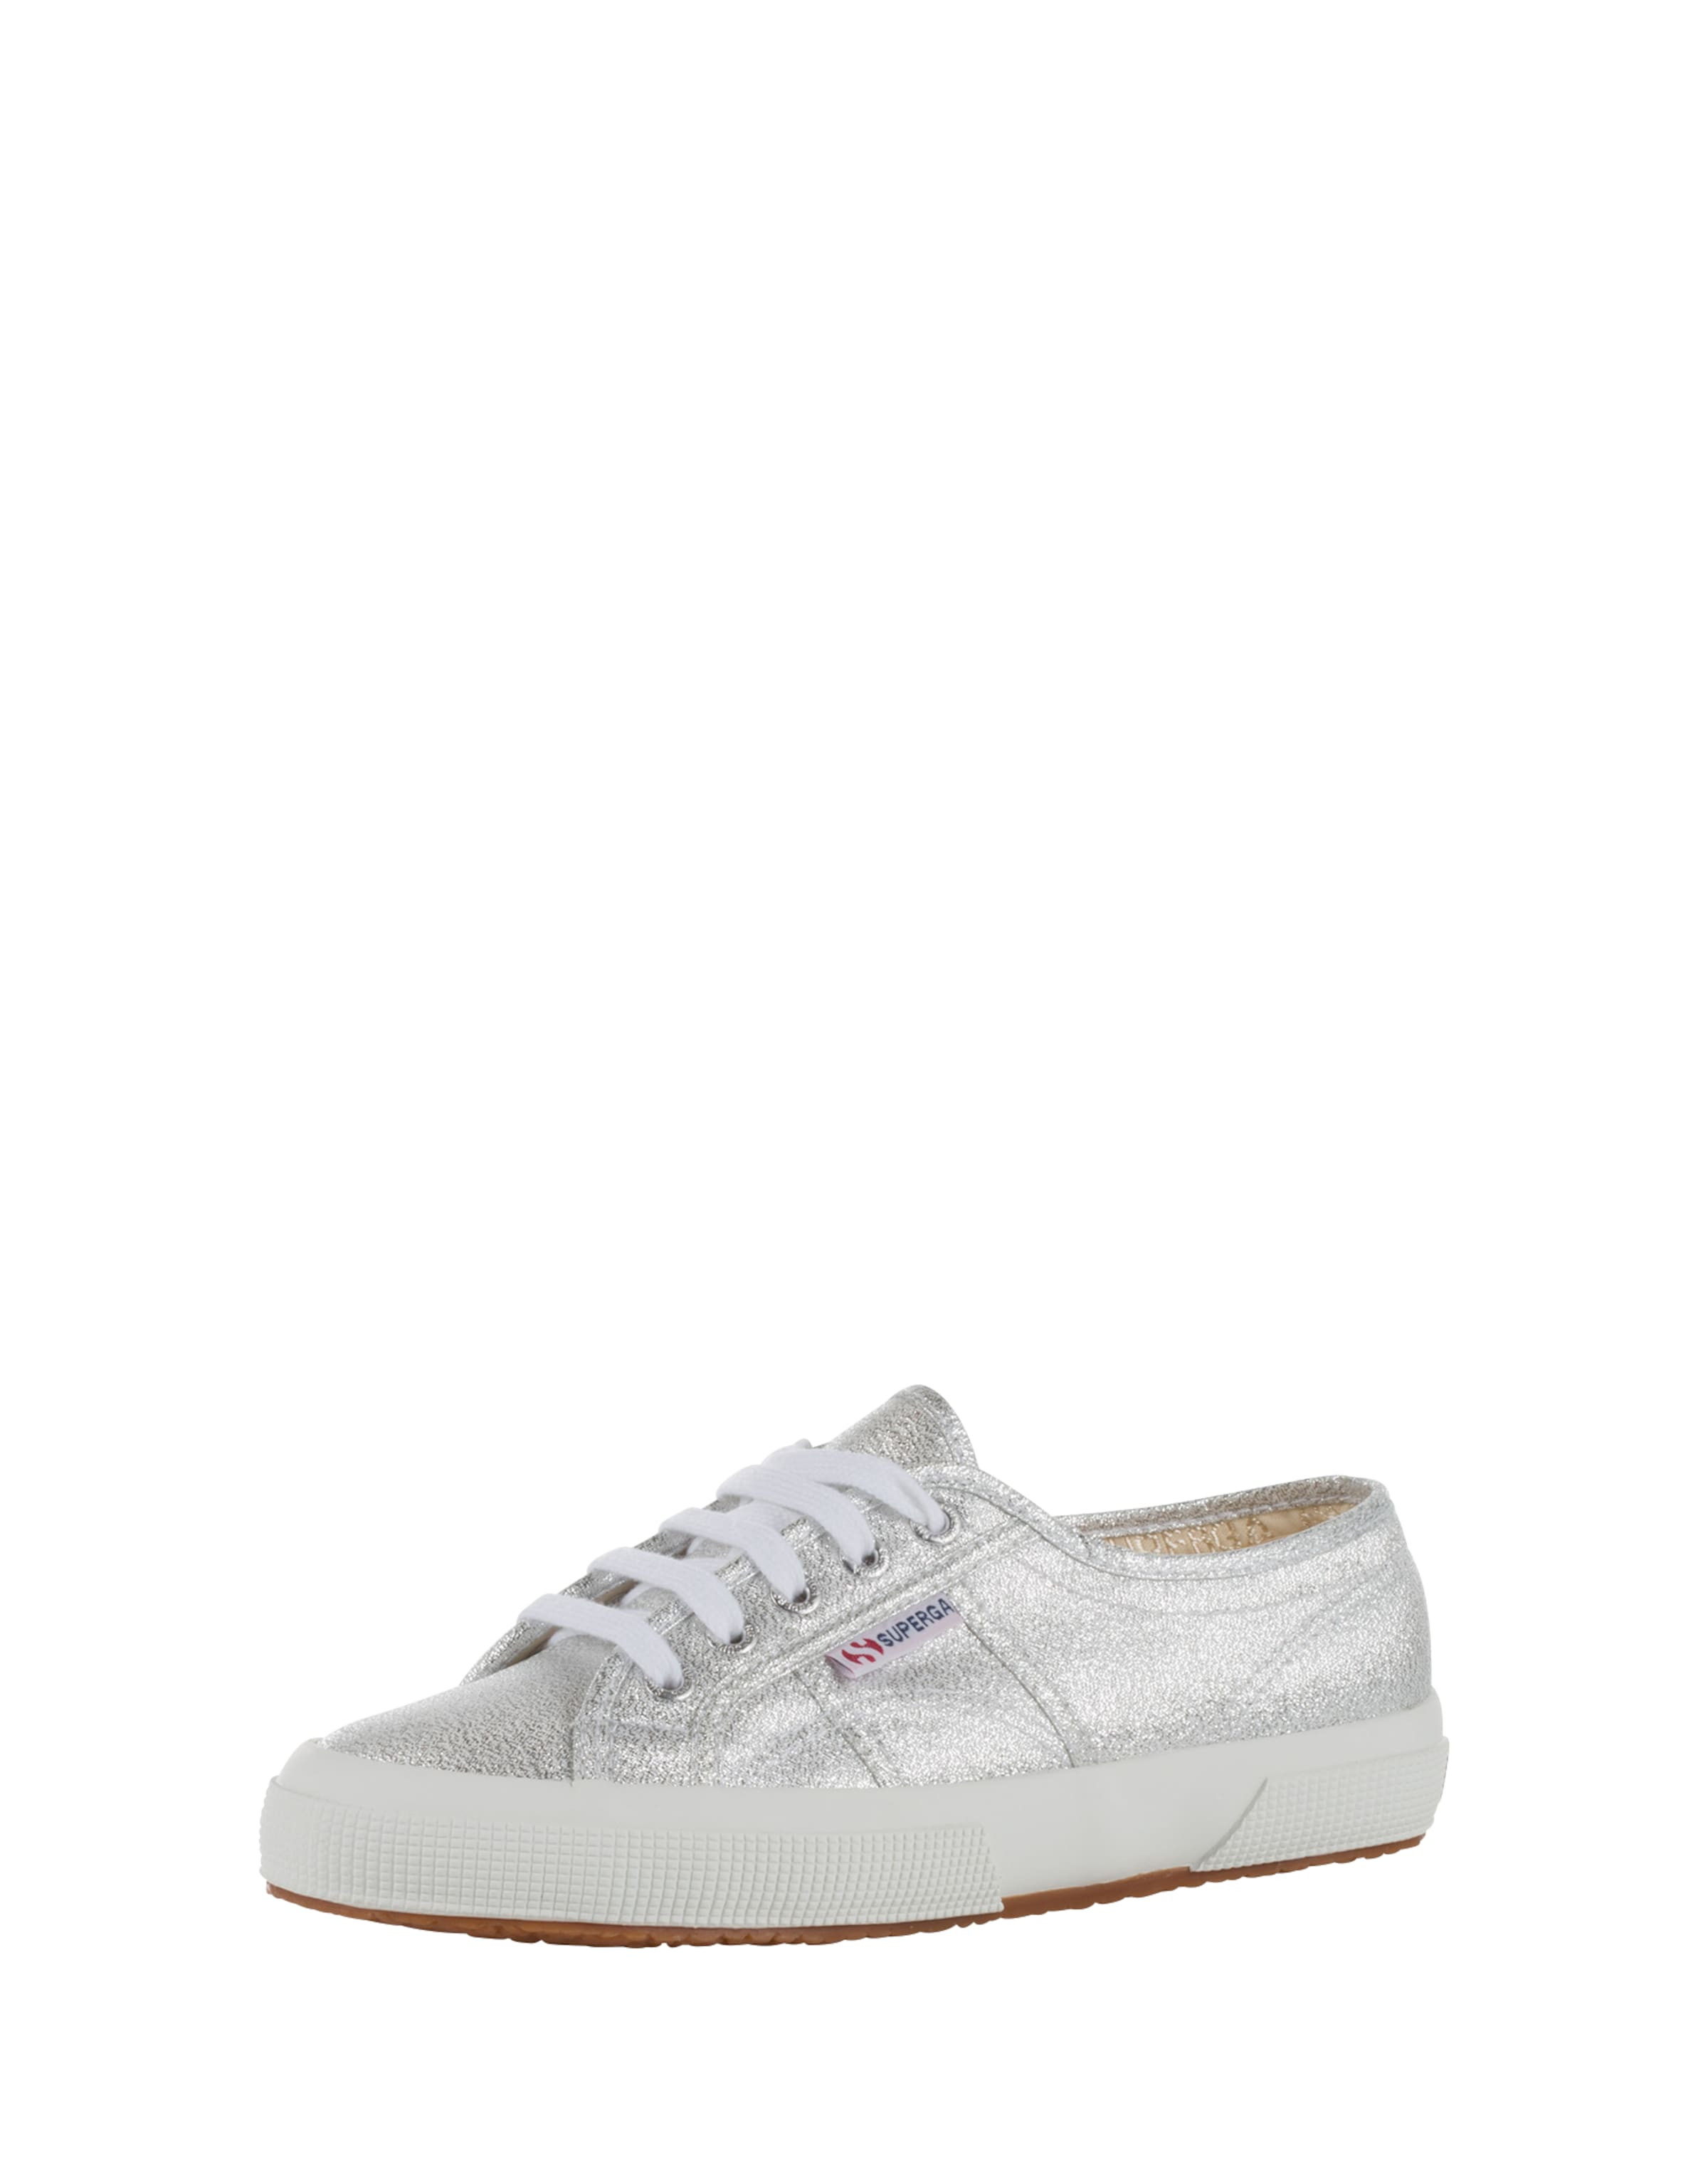 SUPERGA Canvas Sneaker  2750 Lamew